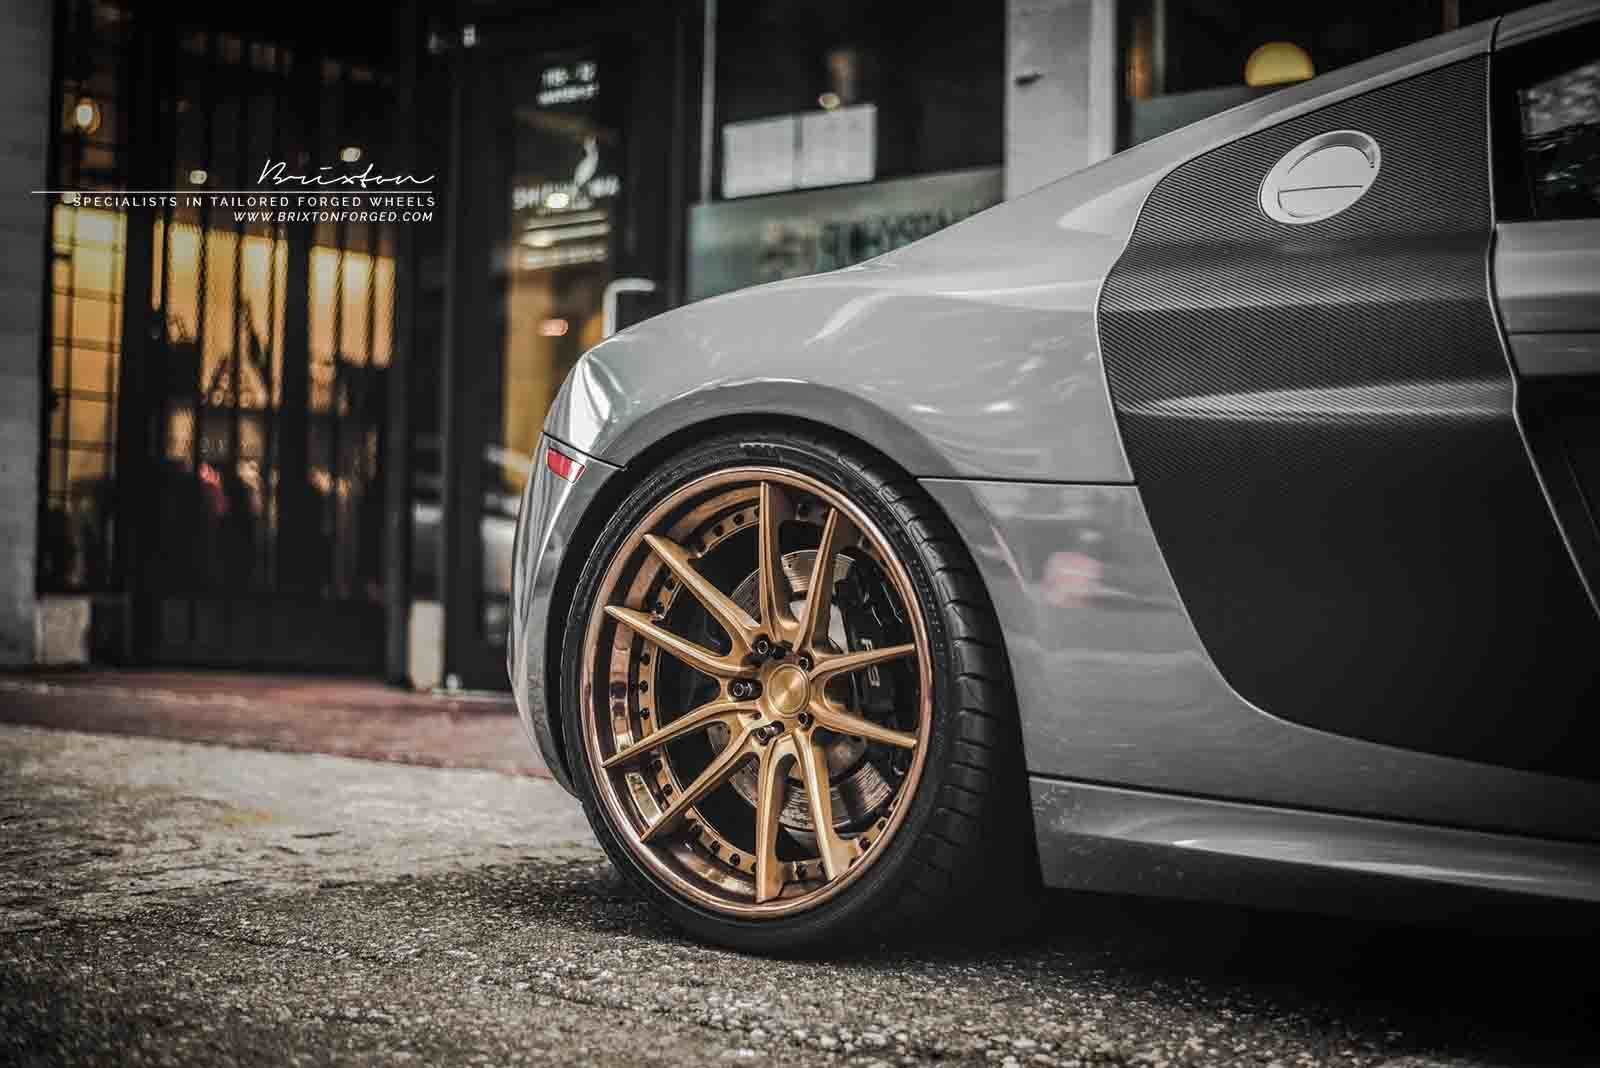 images-products-1-2288-232974576-brixton-forged-m53-targa-series-audi-r8-v10-grey-20-inch-super-concave-3-piece-brushed-bronze-06.jpg